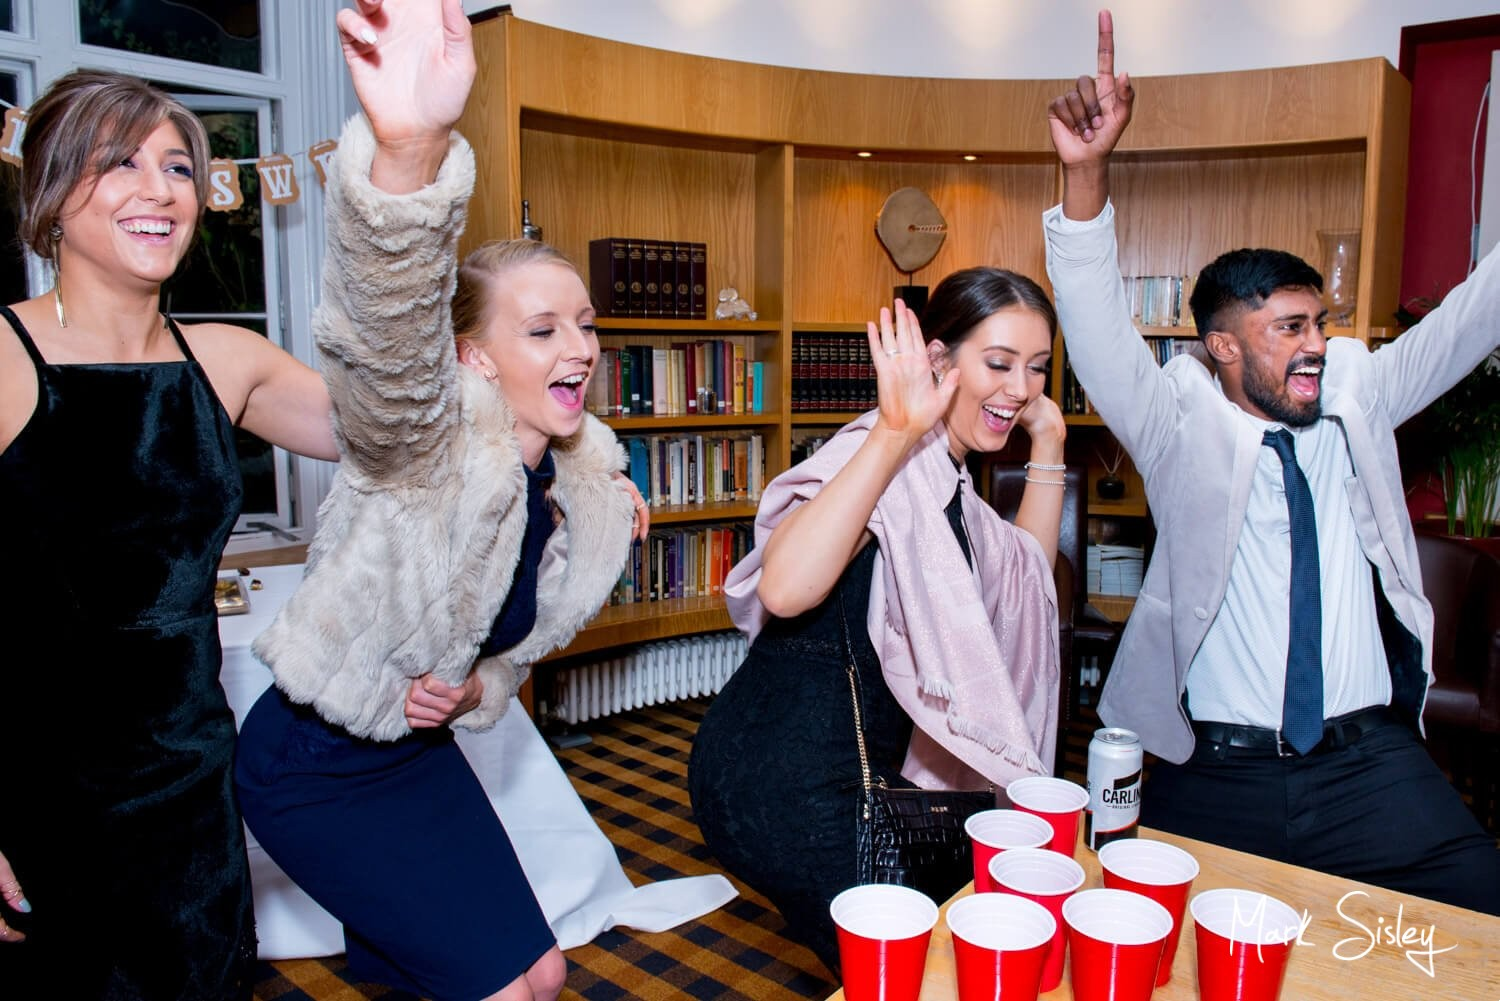 Missenden Abbey autumn wedding fun and games in the library